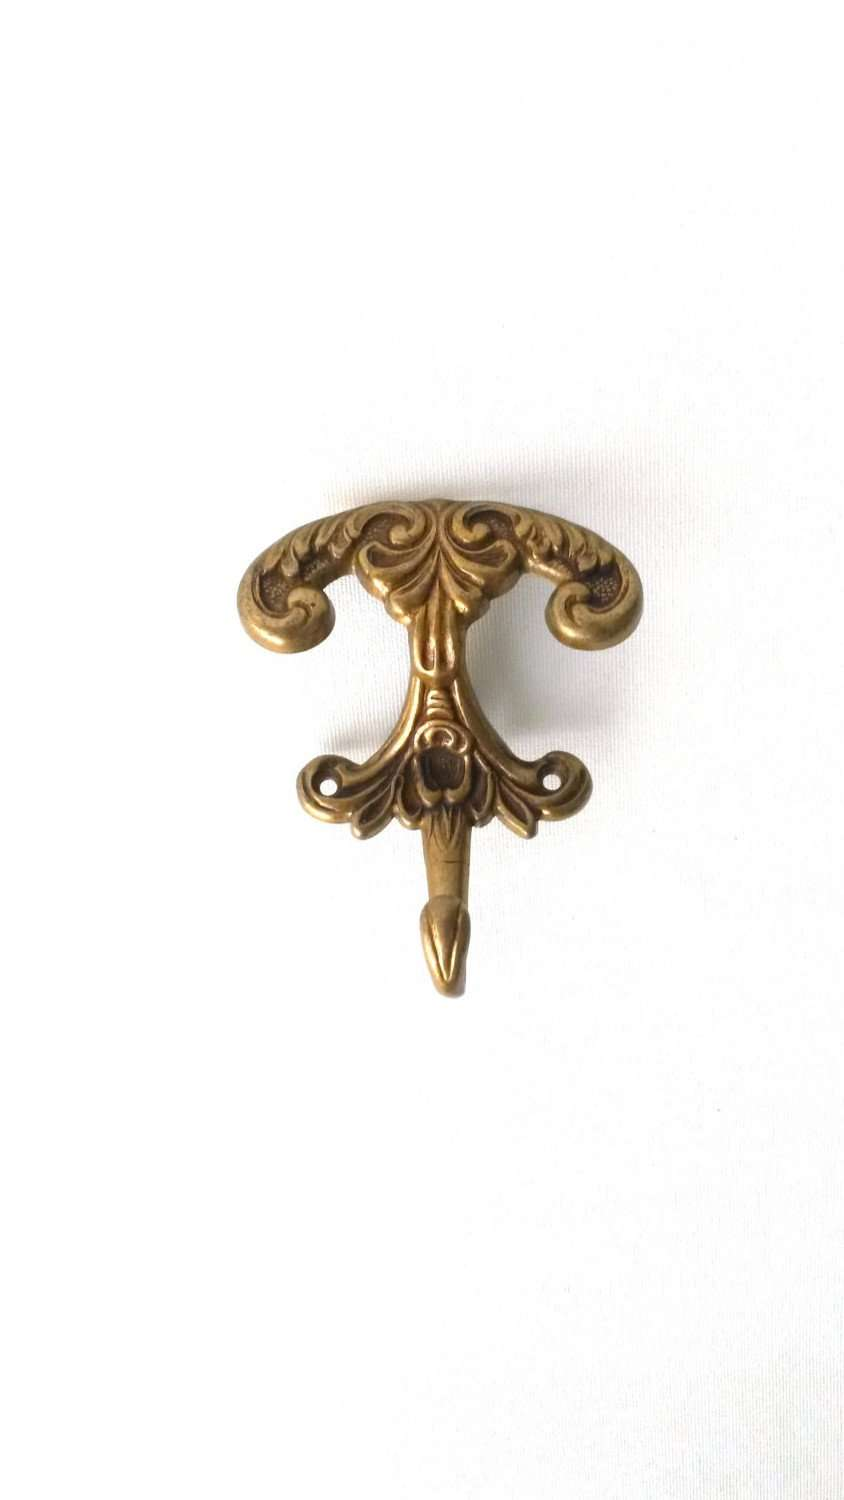 UpperDutch:Hooks and Hardware,1 (ONE) Solid Brass Ornate Coat hook. Victorian style. Storage solution. Wall Hook.